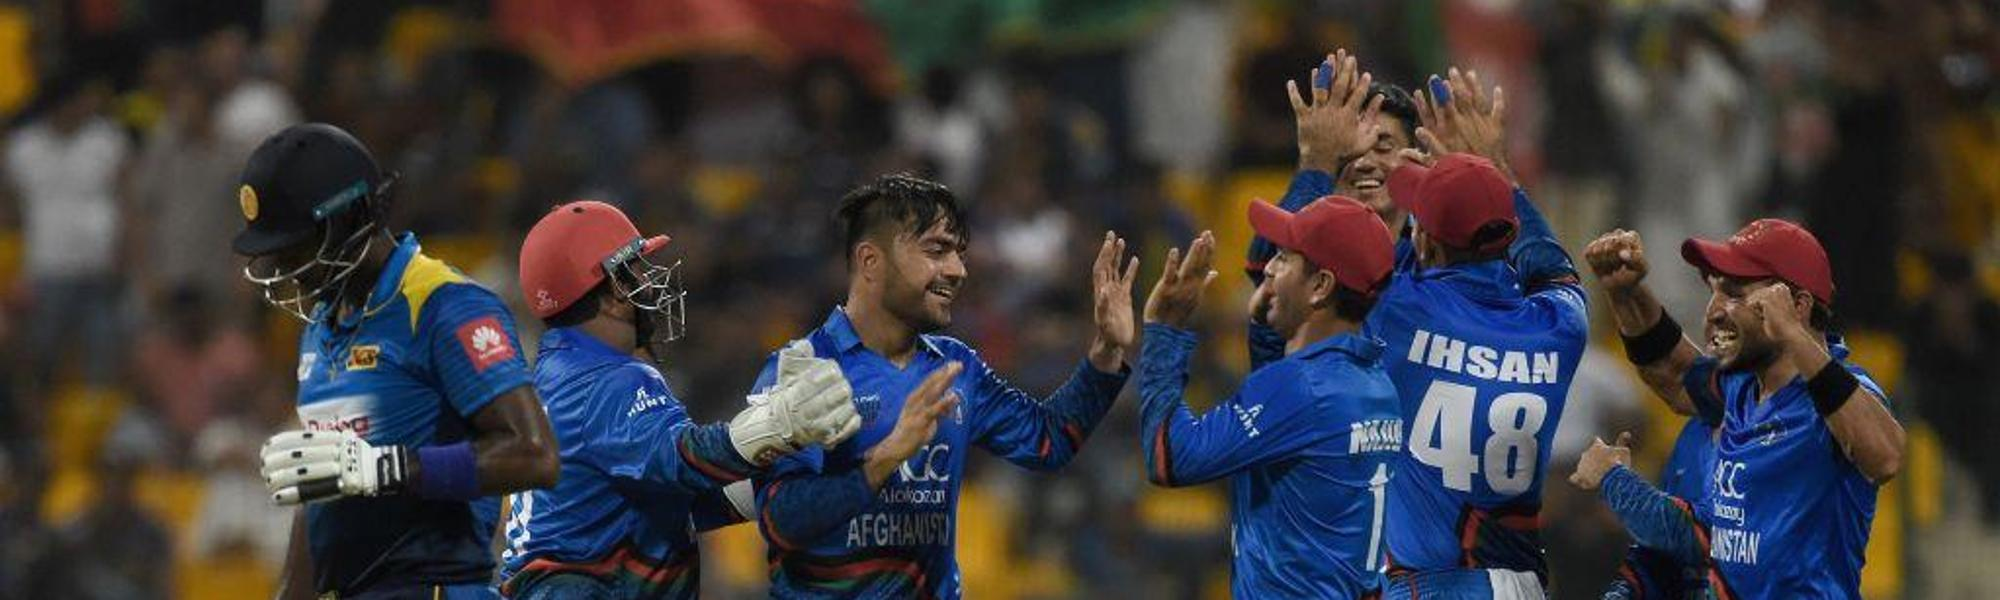 Rashid Khan and Mujeeb Ur Rahman are in form for Afghanistan